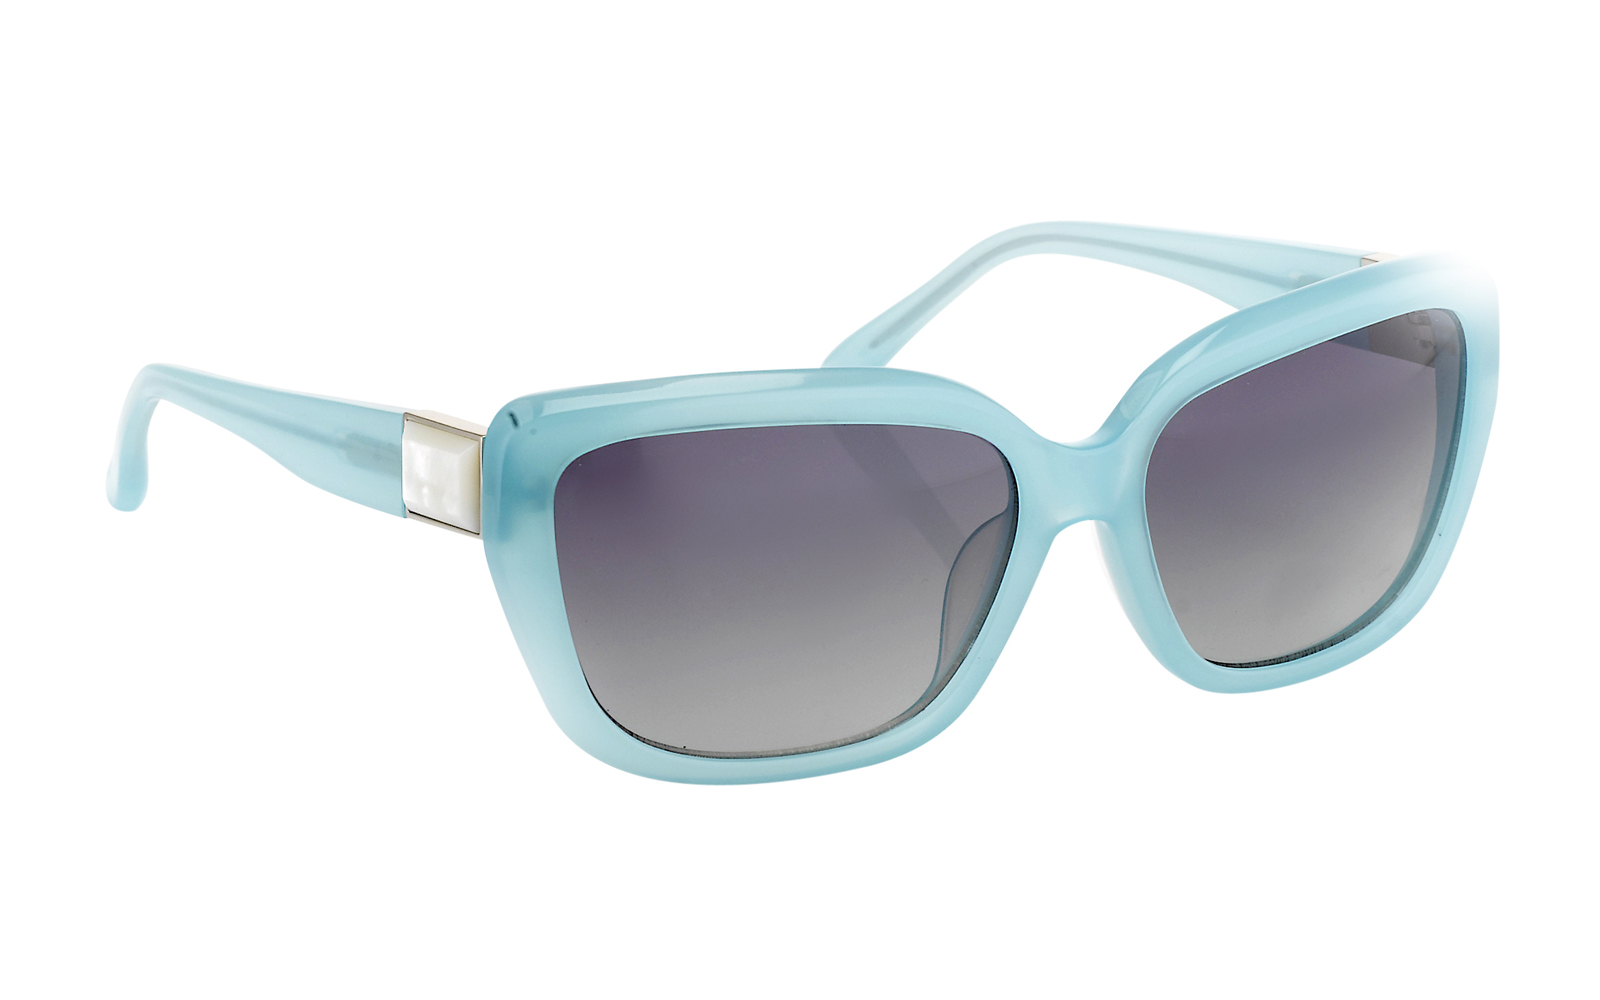 Gifts For Her: Oscar de la Renta 6 C5 sunglasses #giftsforher #gifts #sunglasscurator